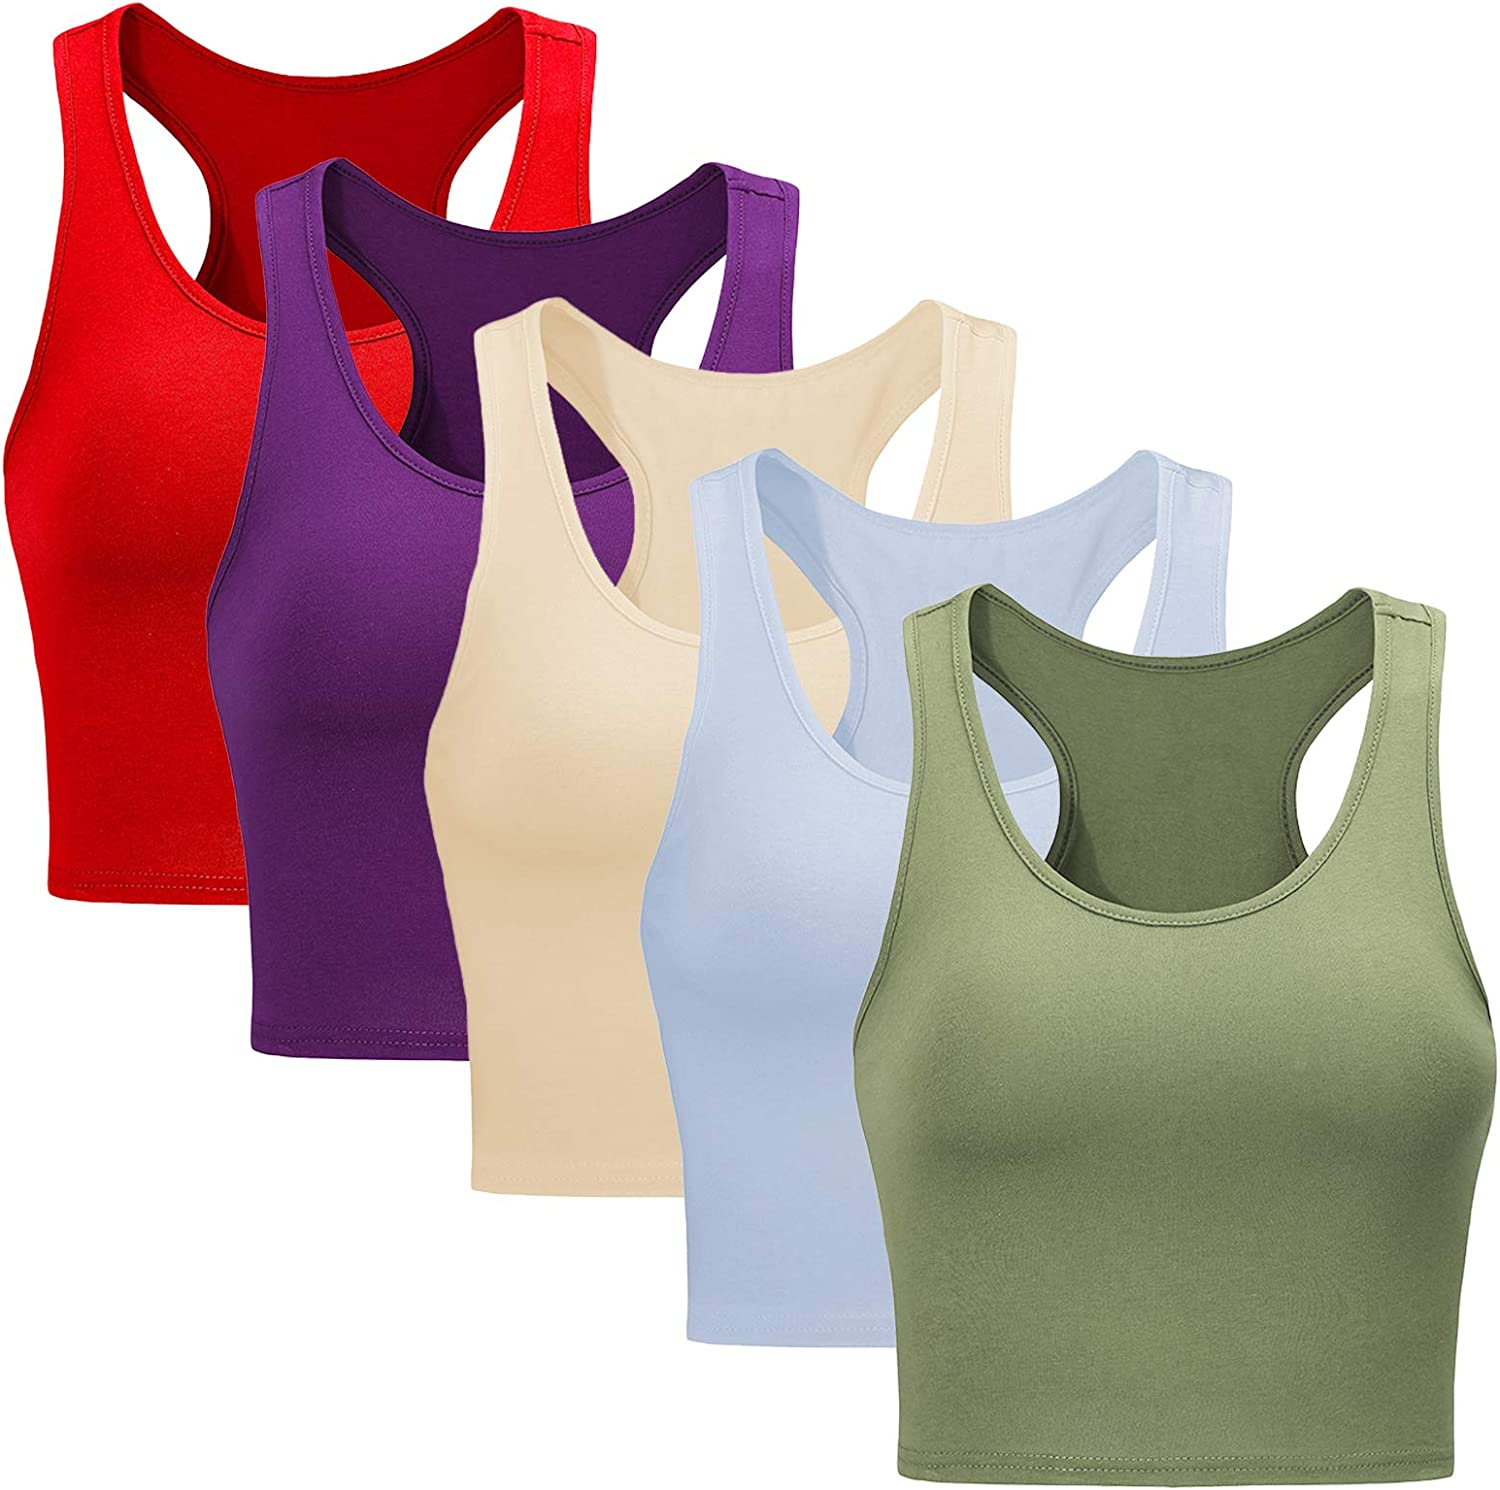 Star Vibe Basic Sports Crop Tank Tops for Women Cropped Racerback Tanks Workout Exercise Yoga Tops 5 Pieces